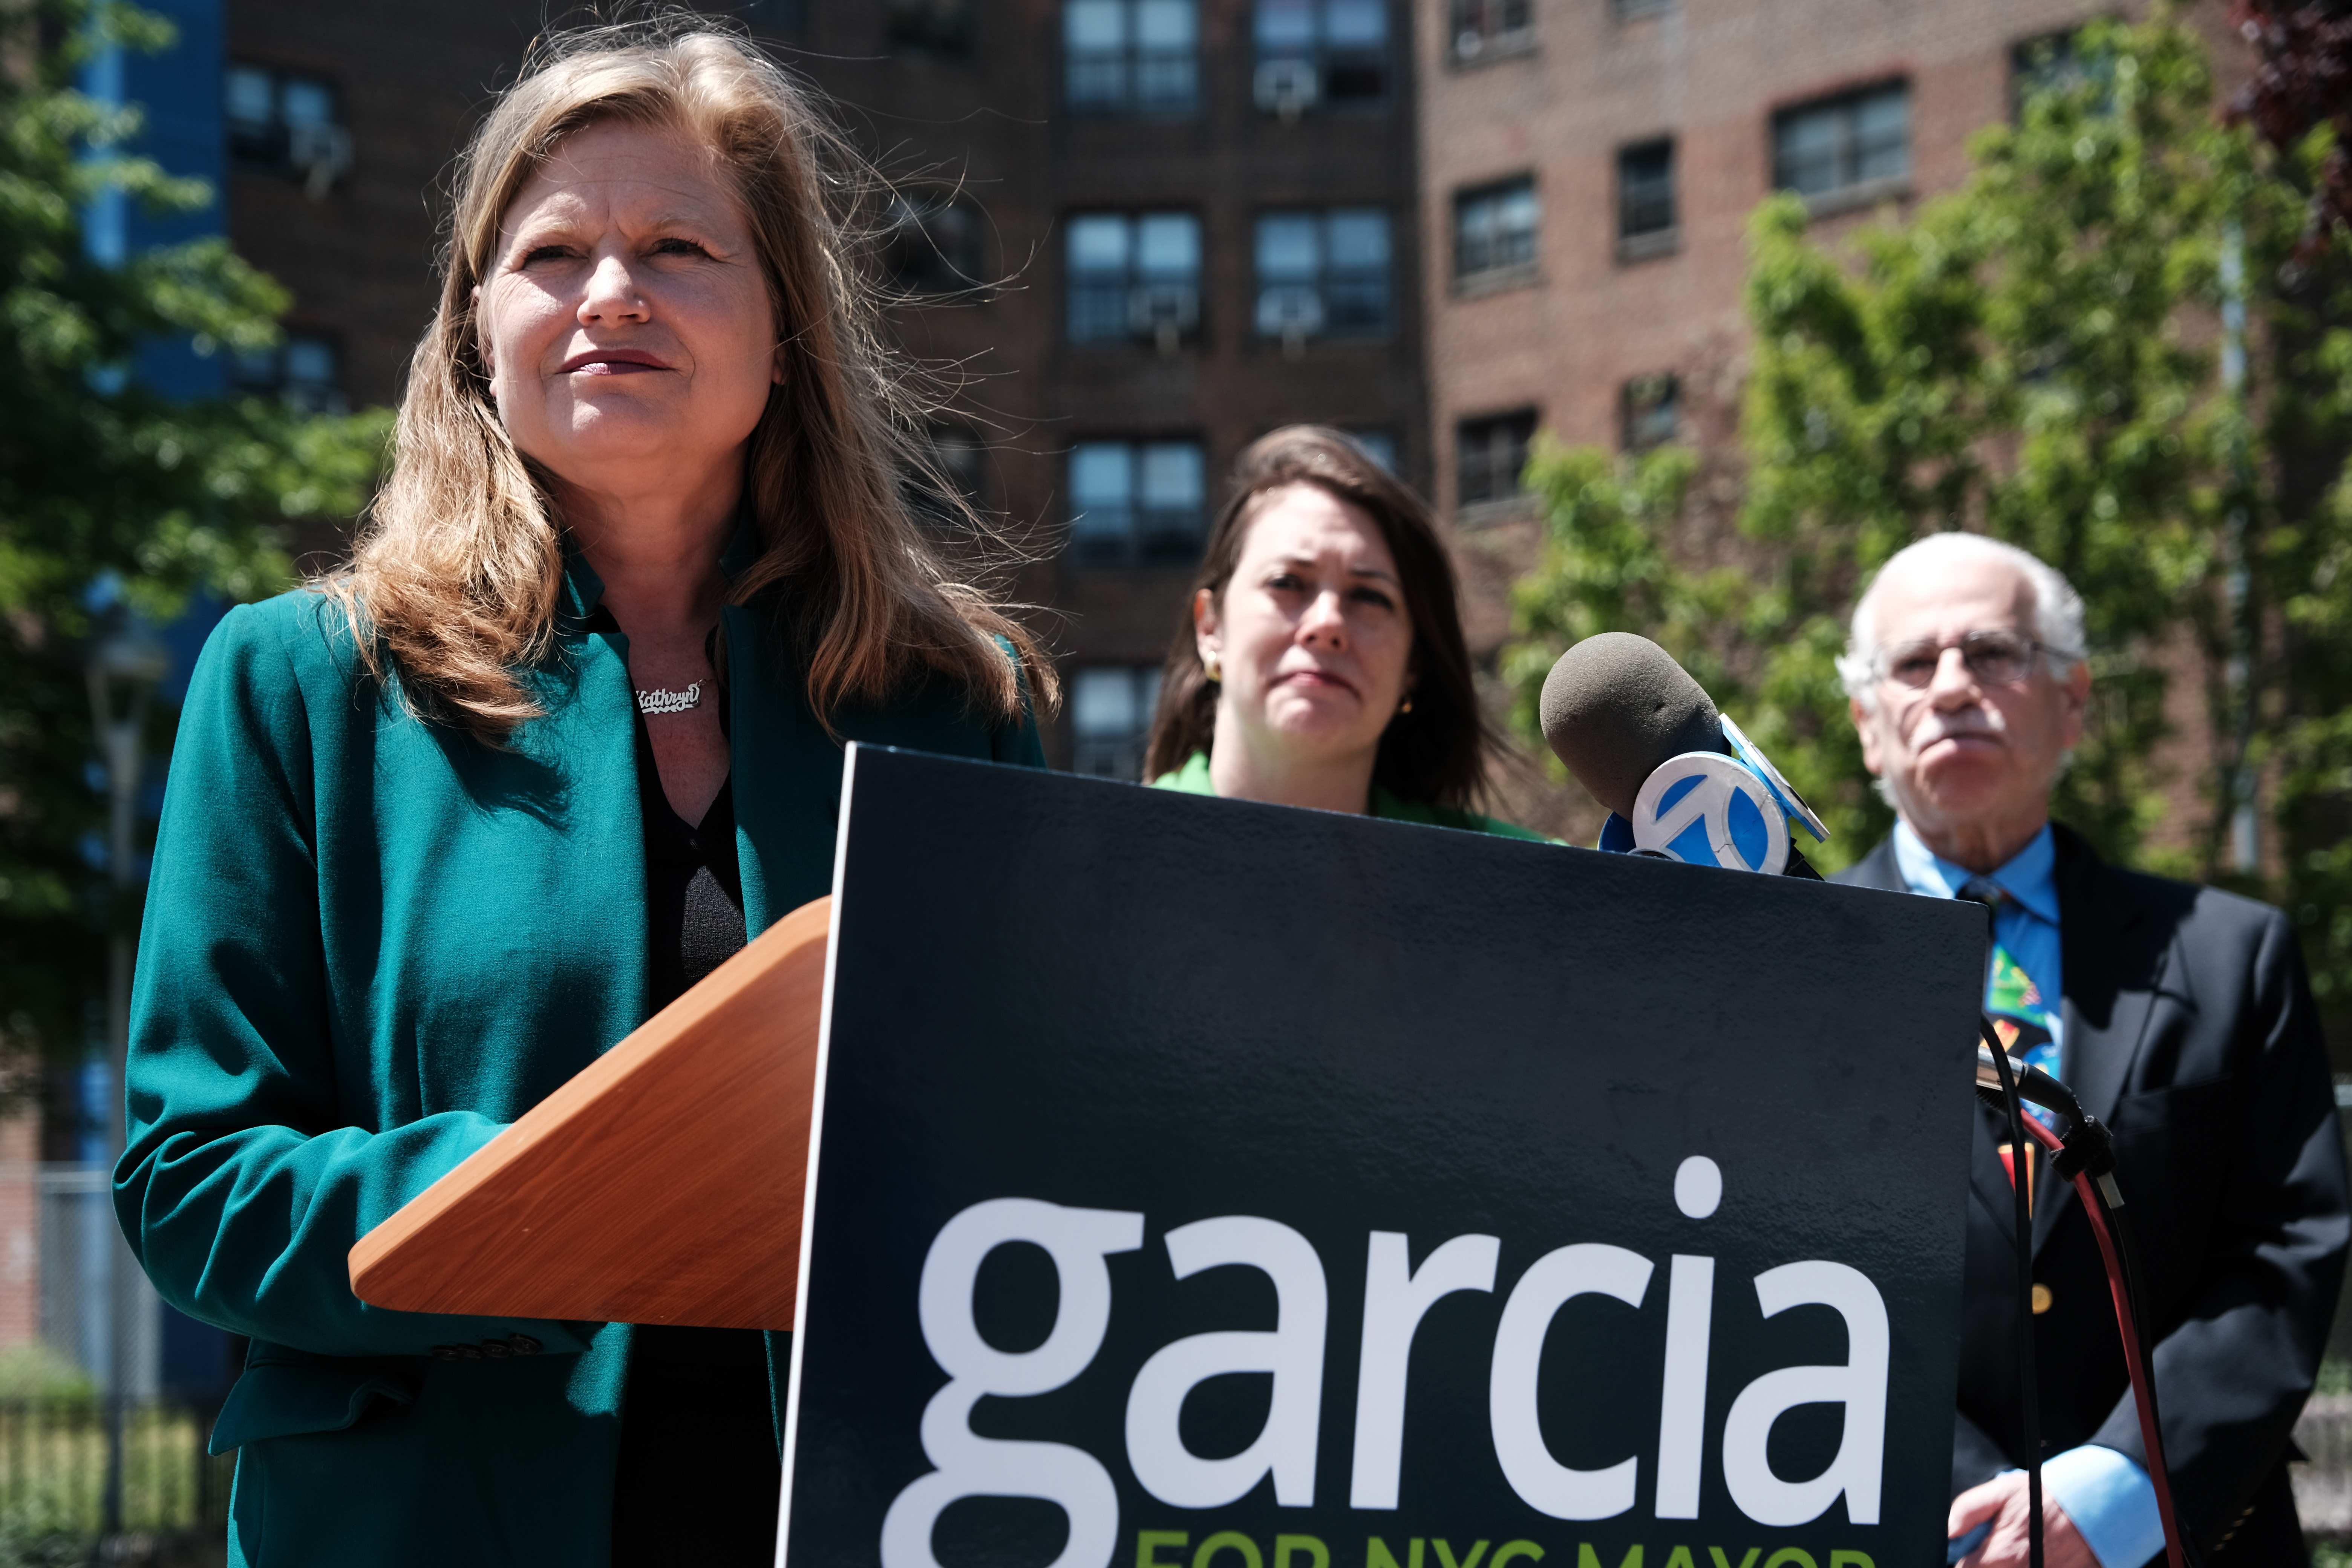 New York City mayoral candidate Kathryn Garcia in Queens on May 25, 2021. If Garcia becomes the next mayor, she might downsize the education department and move more money into principals' budgets.